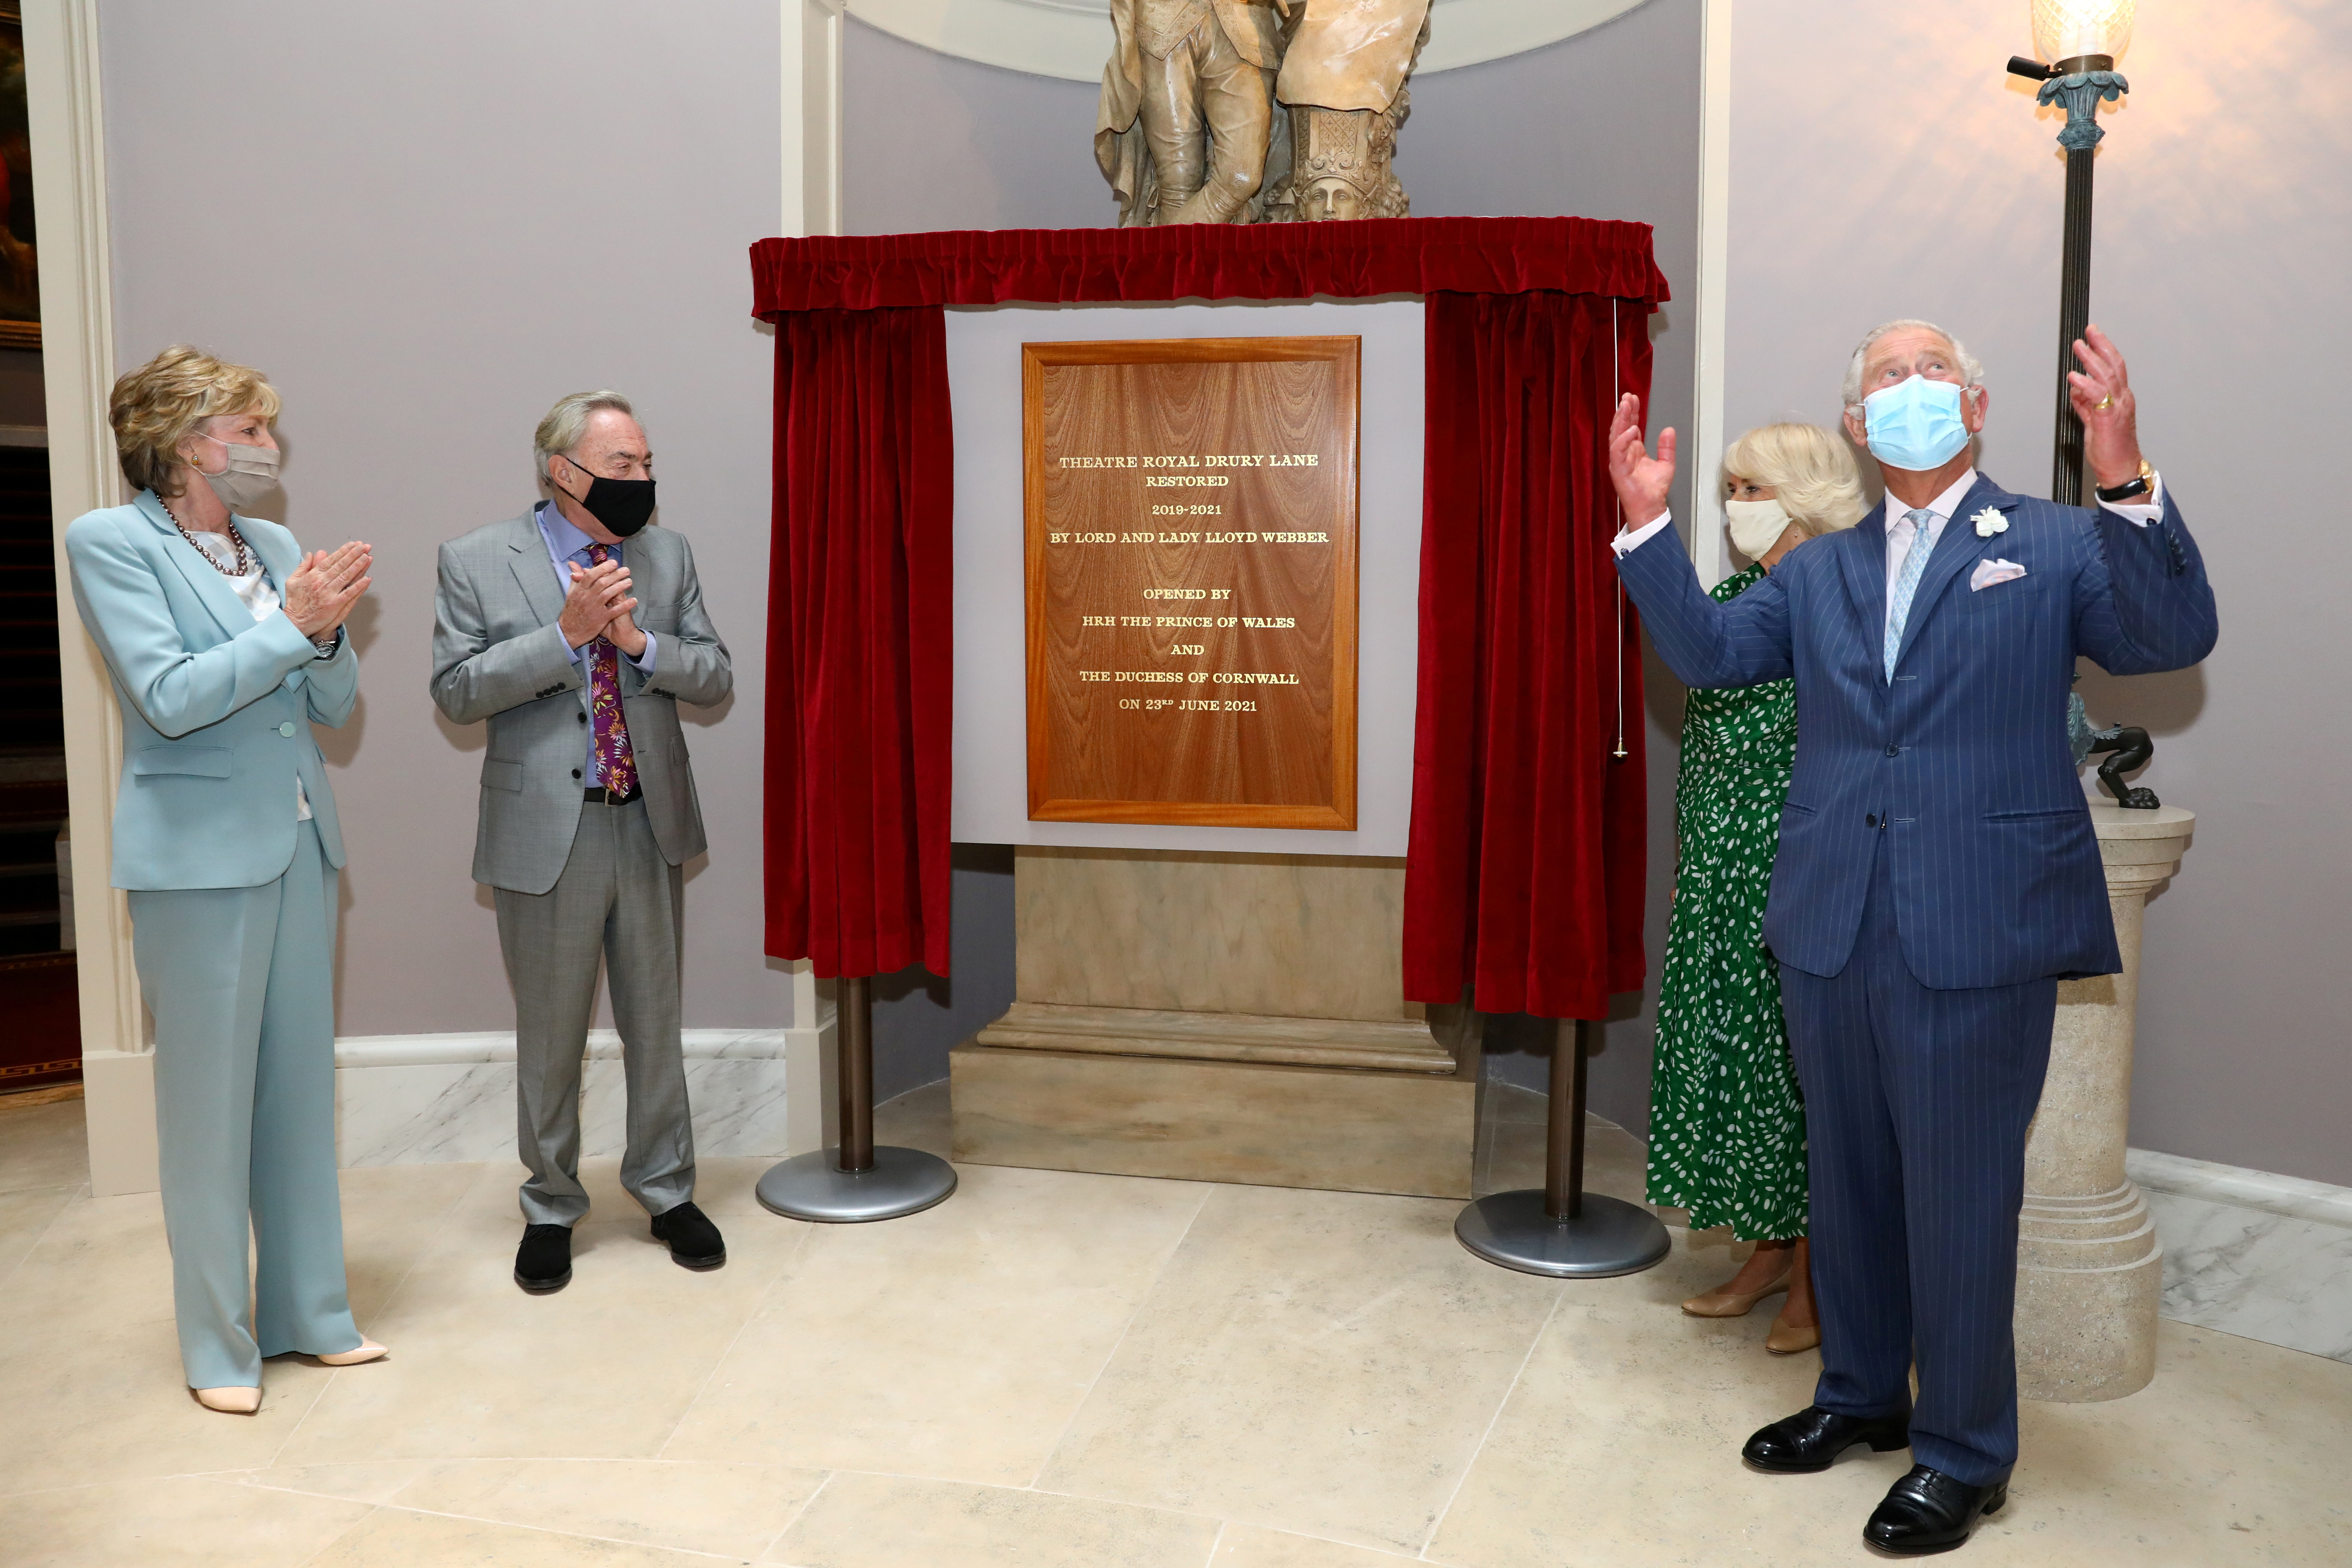 Britain's Prince Charles and Camilla, Duchess of Cornwall, stand next to Lord Andrew Lloyd Webber and Lady Madeleine Lloyd Webber as they unveil a plaque to commemorate their visit to Theatre Royal in London, Britain June 23, 2021. Tim P. Whitby/Pool via REUTERS